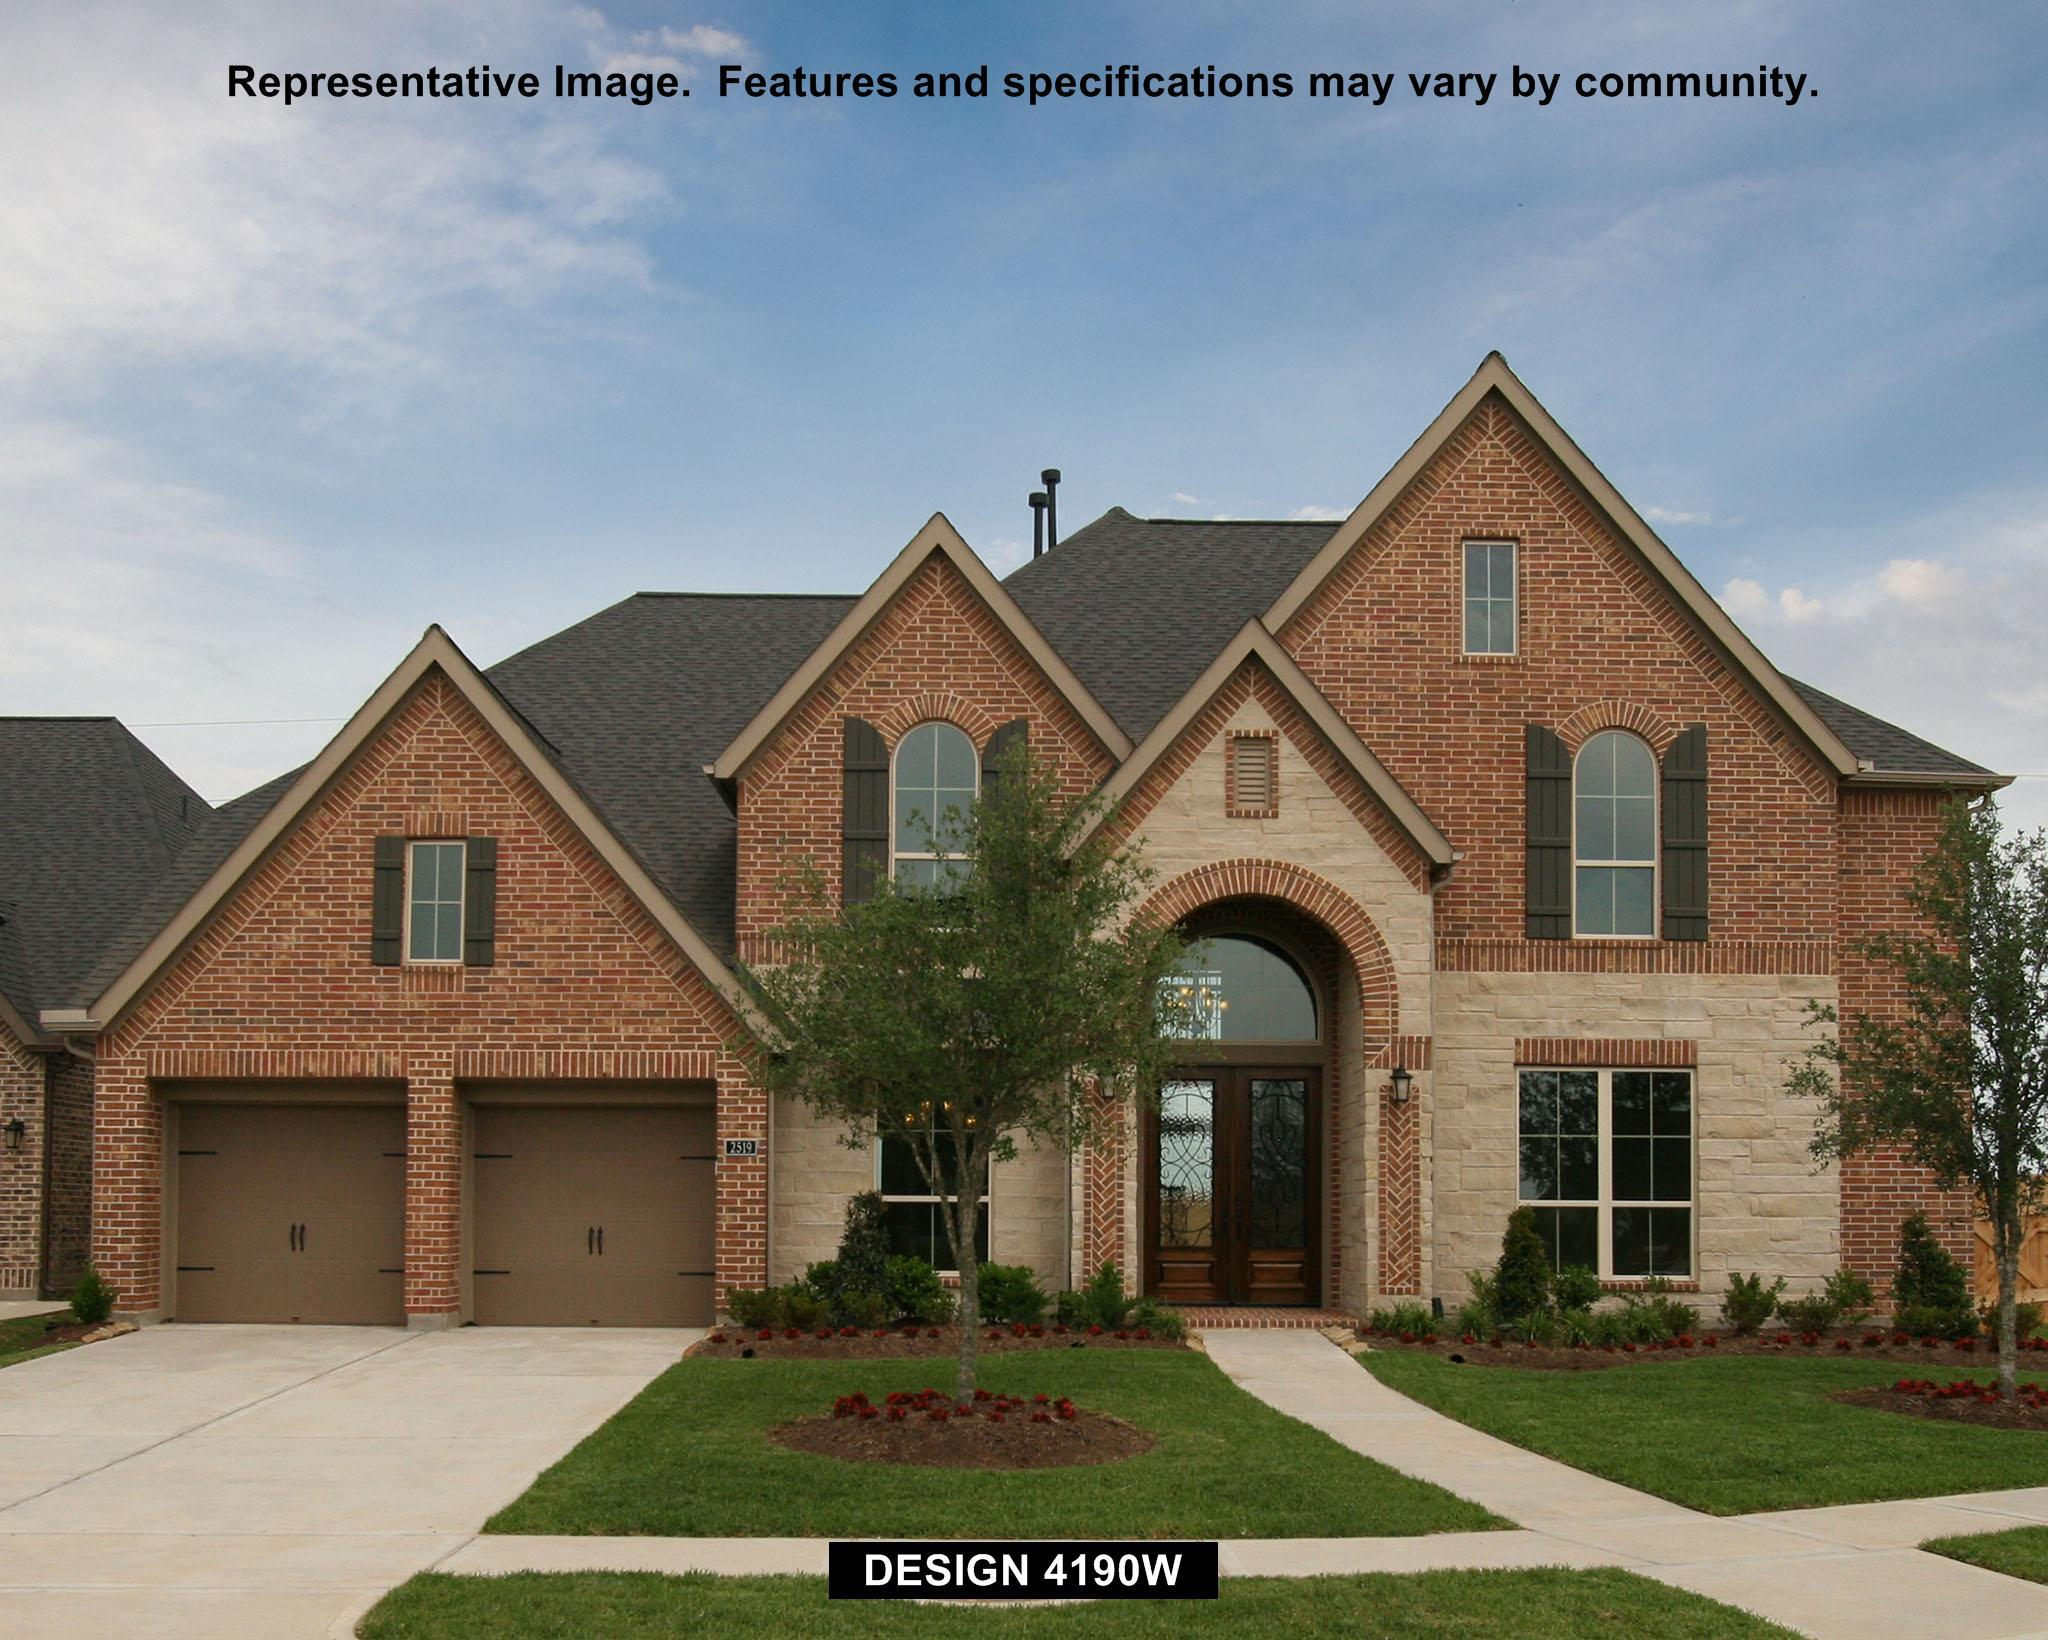 Single Family for Sale at The Groves 70' - 4190w 17306 Sages Ravine Drive Atascocita, Texas 77346 United States